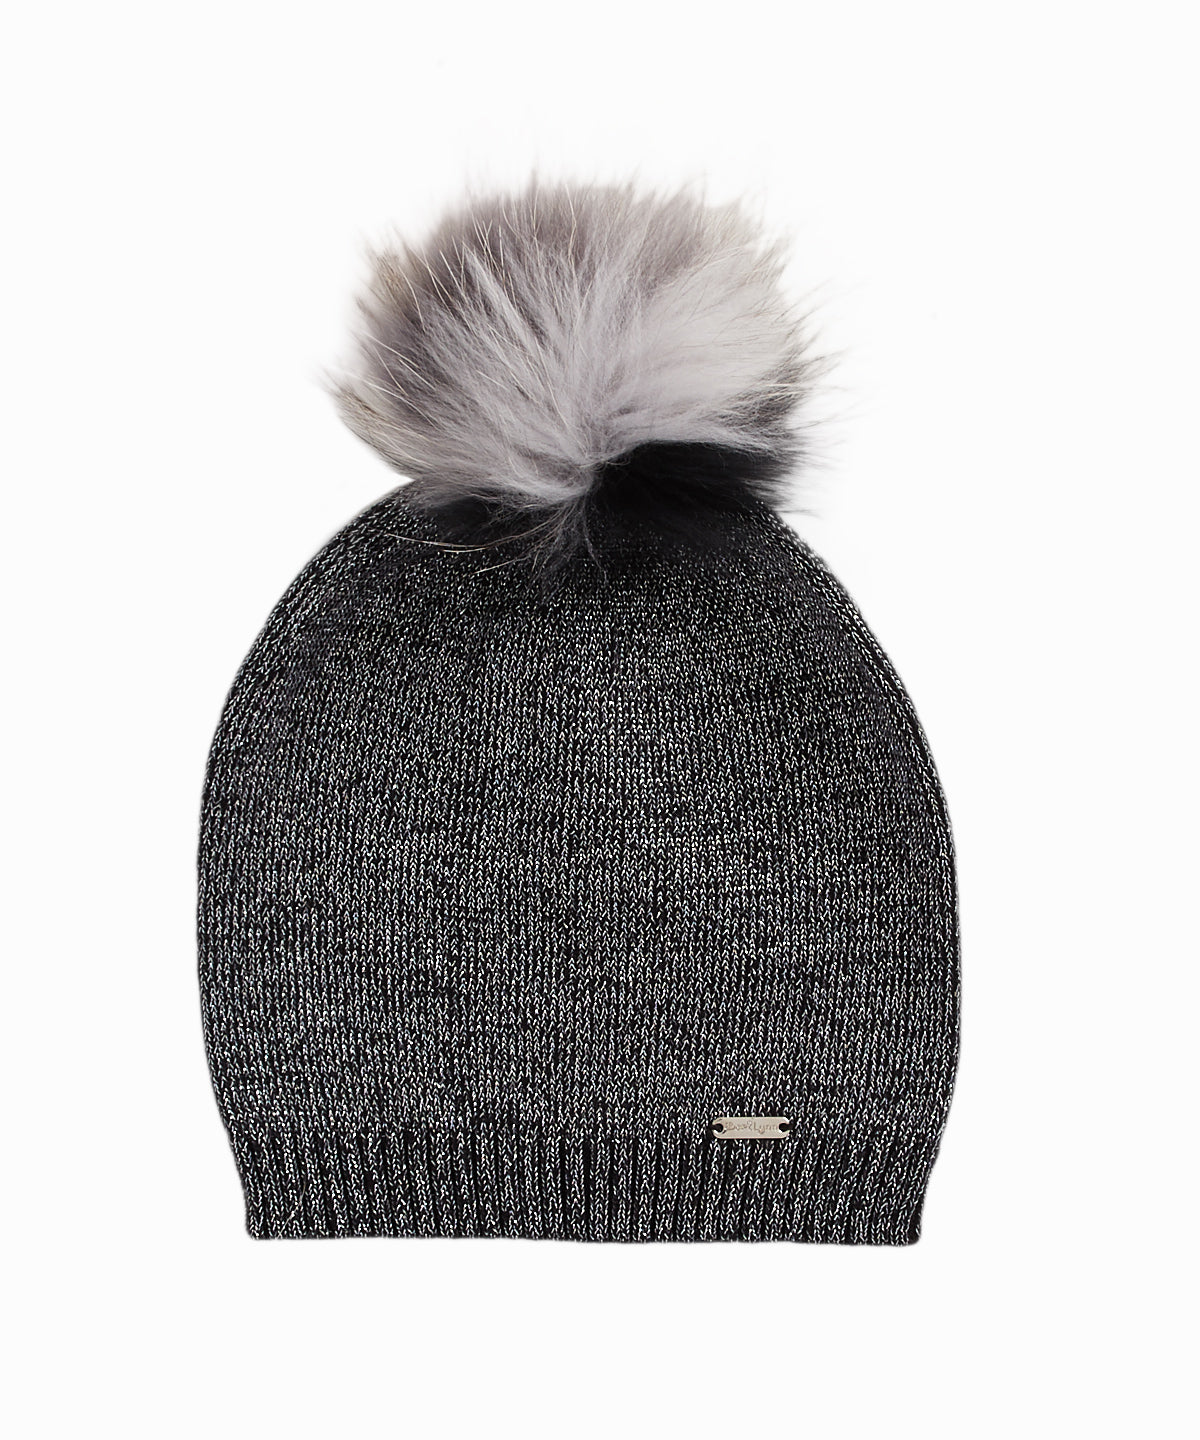 Black Sparkle Fur Pom Beanie Hat